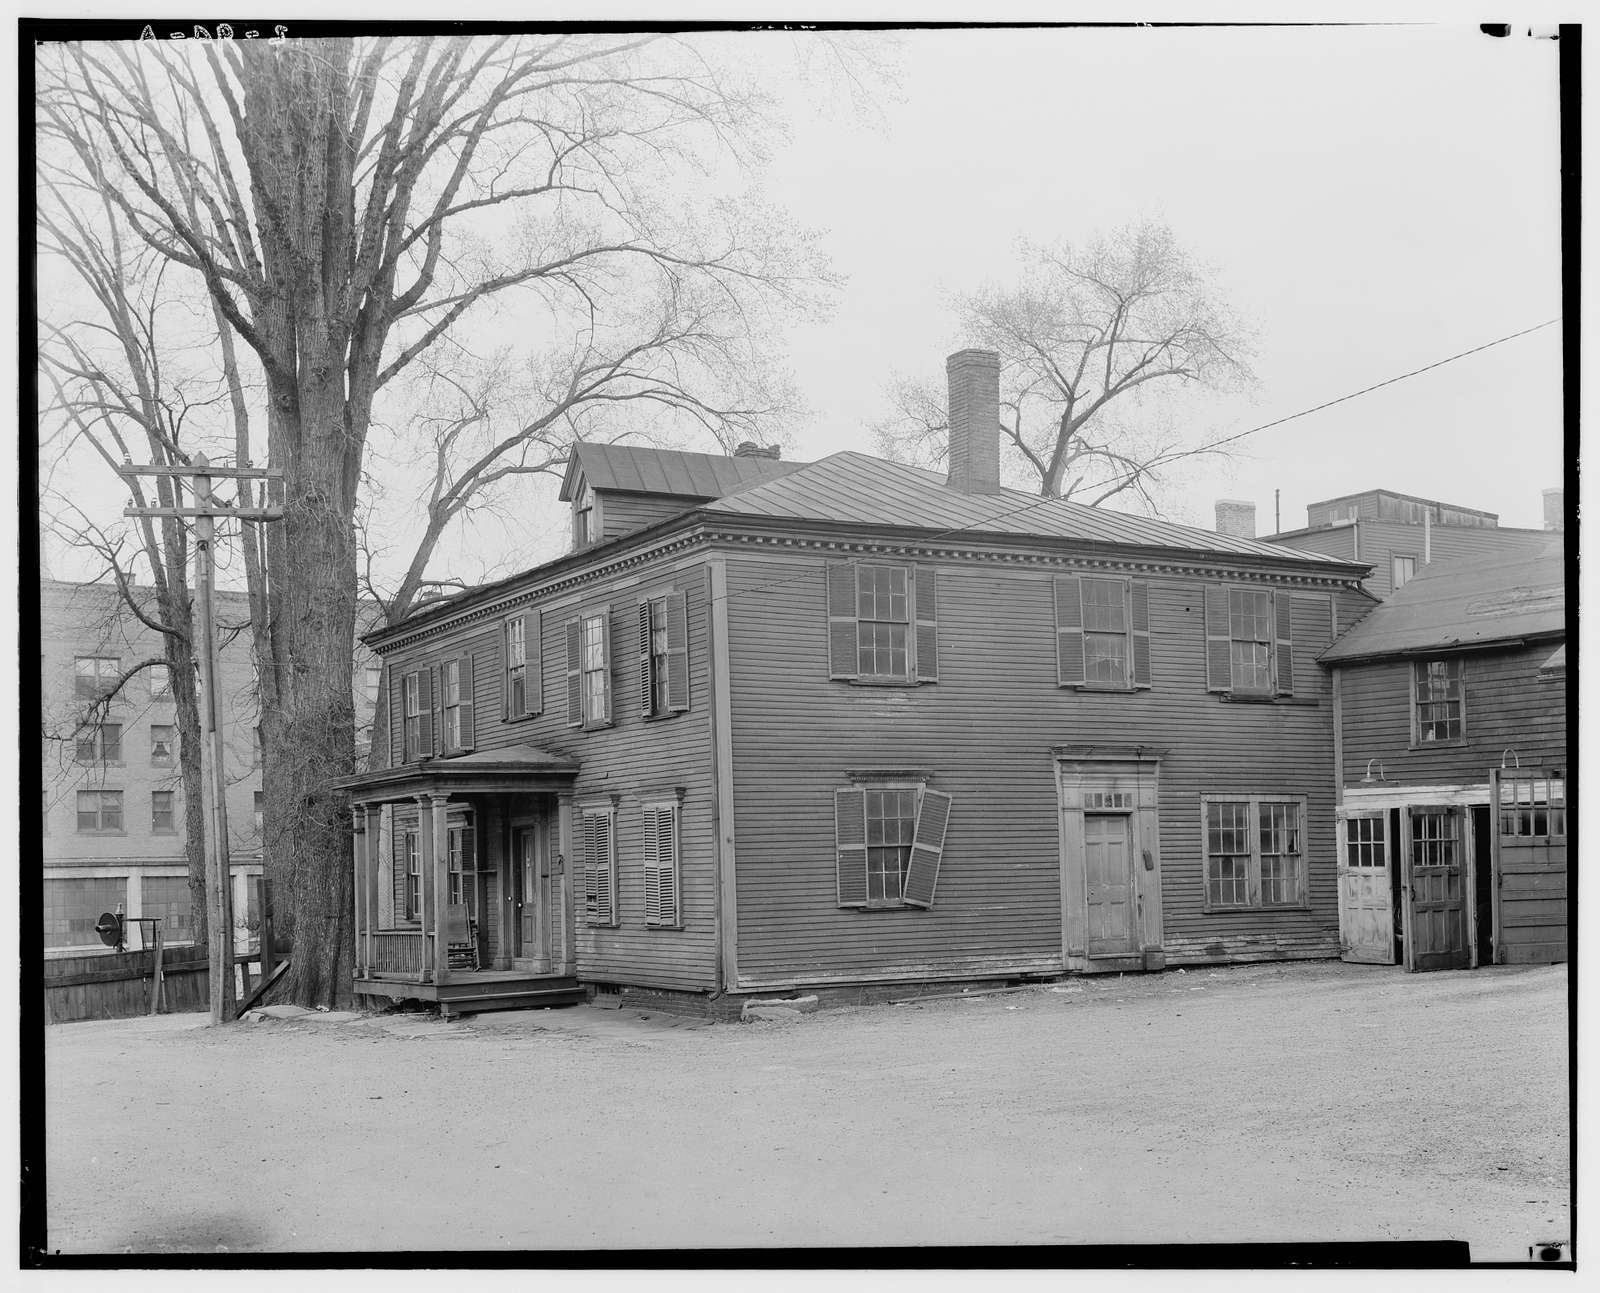 Reverend Roger Newton House, Newton Place (moved from original location), Greenfield, Franklin County, MA